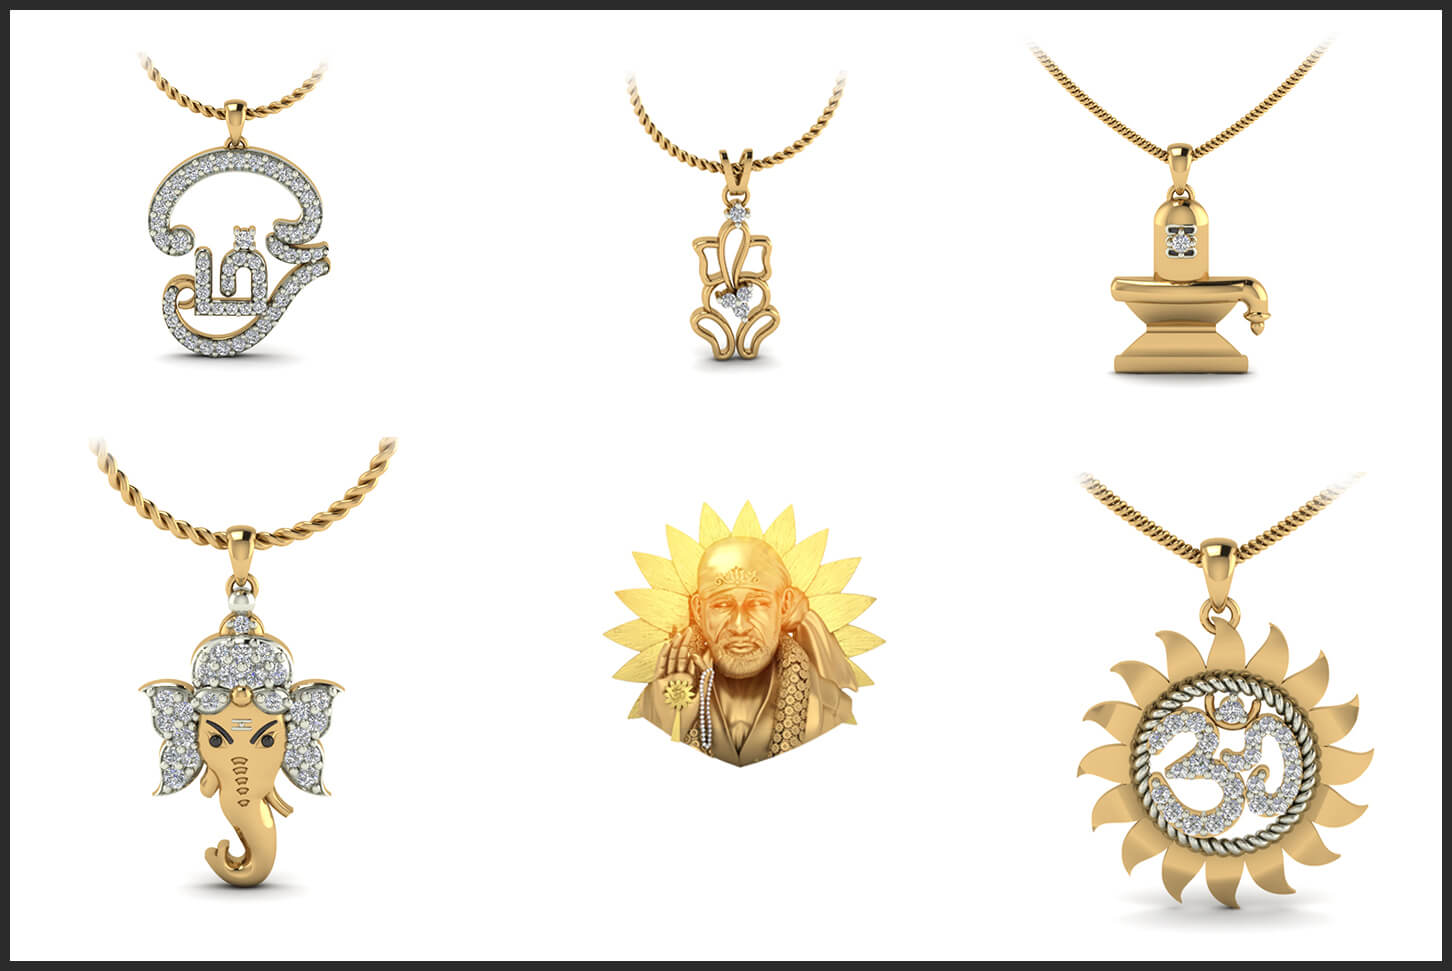 religious pendant designs that will make you stand out at